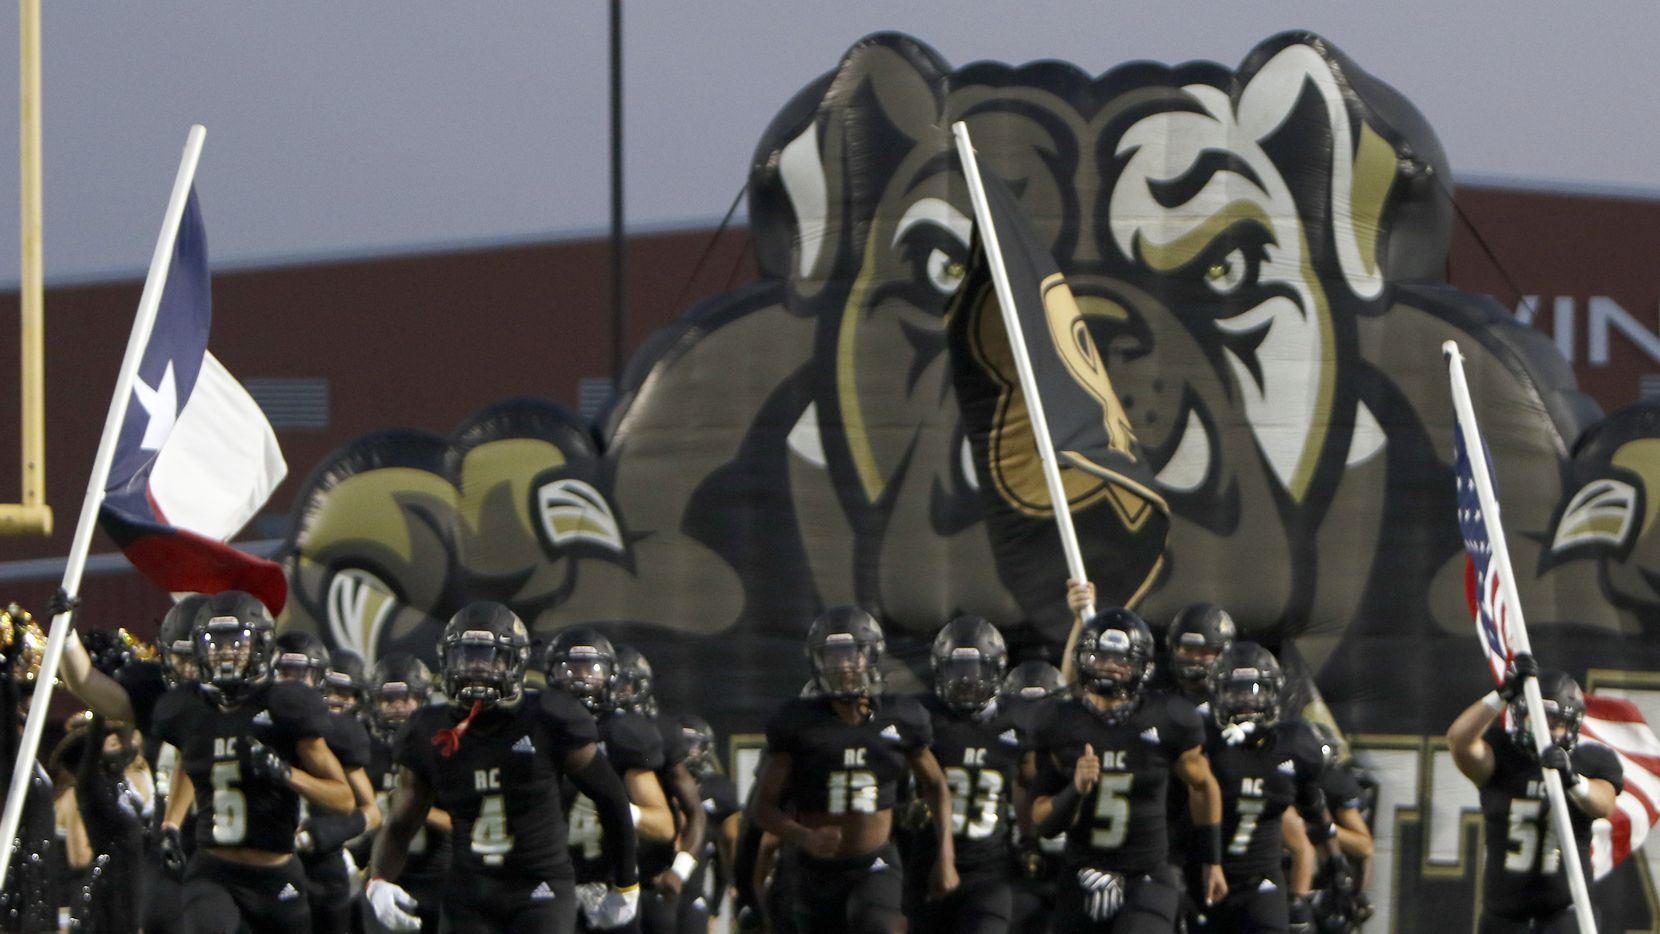 Members of the Royse City Bulldogs storm the field as they emerge from their team inflatable mascot prior to the opening kickoff of their game against Frisco Centennial. The two teams played their Class 5A football game at Royse City ISD Stadium in Royse City on September 25, 2020.